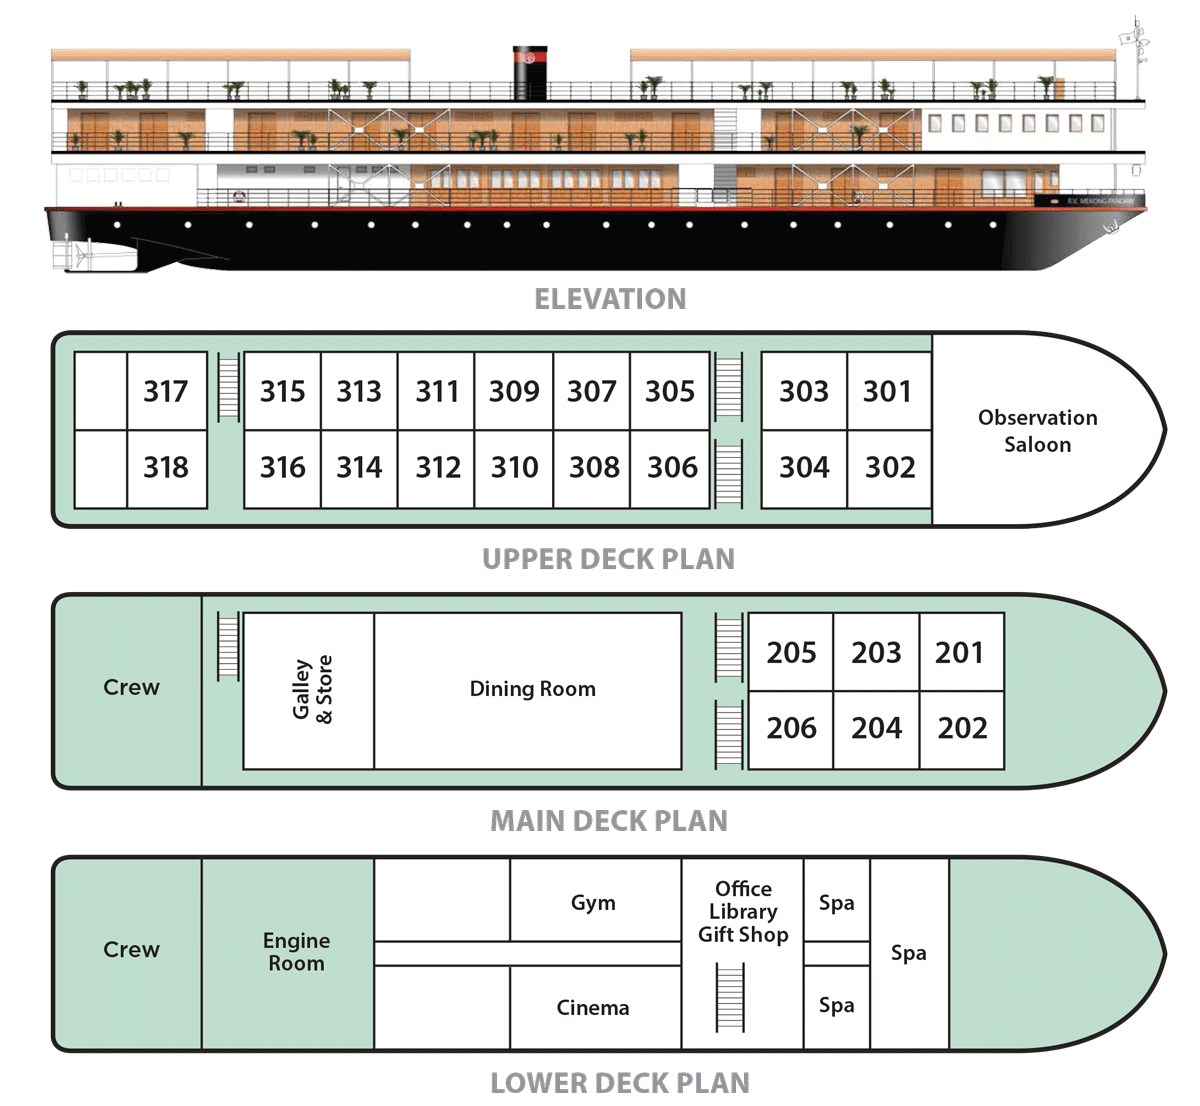 rv mekong pandaw deck plan